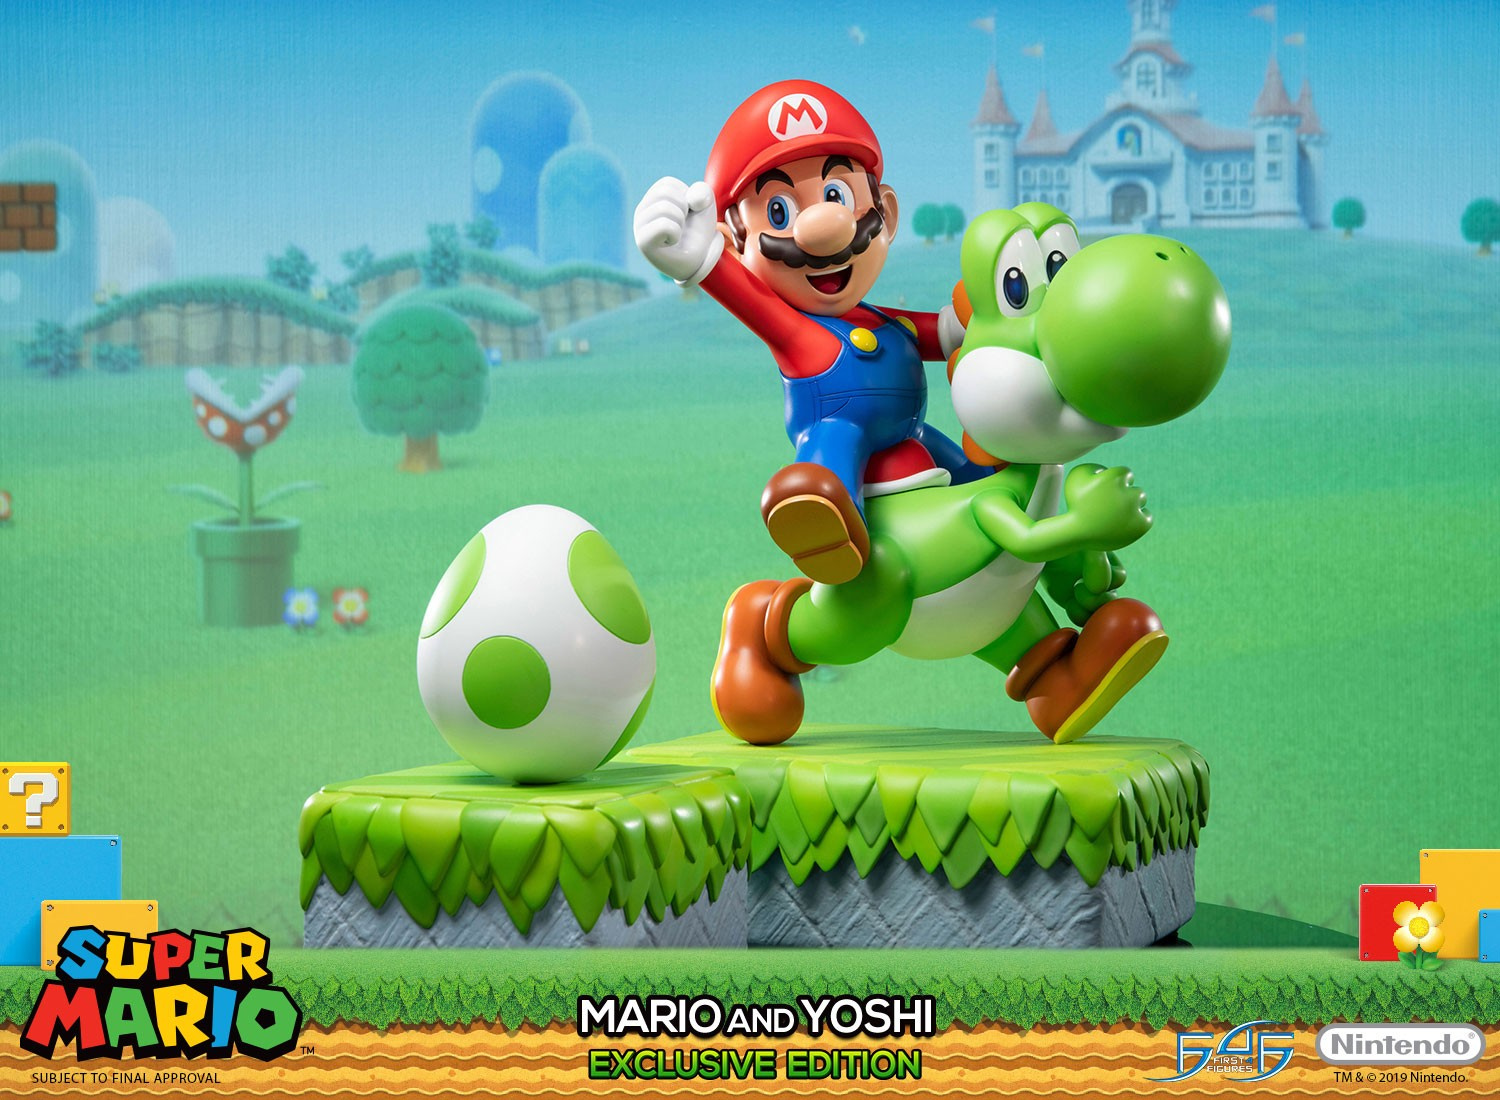 preorders for mario and yoshi statue go live on first 4